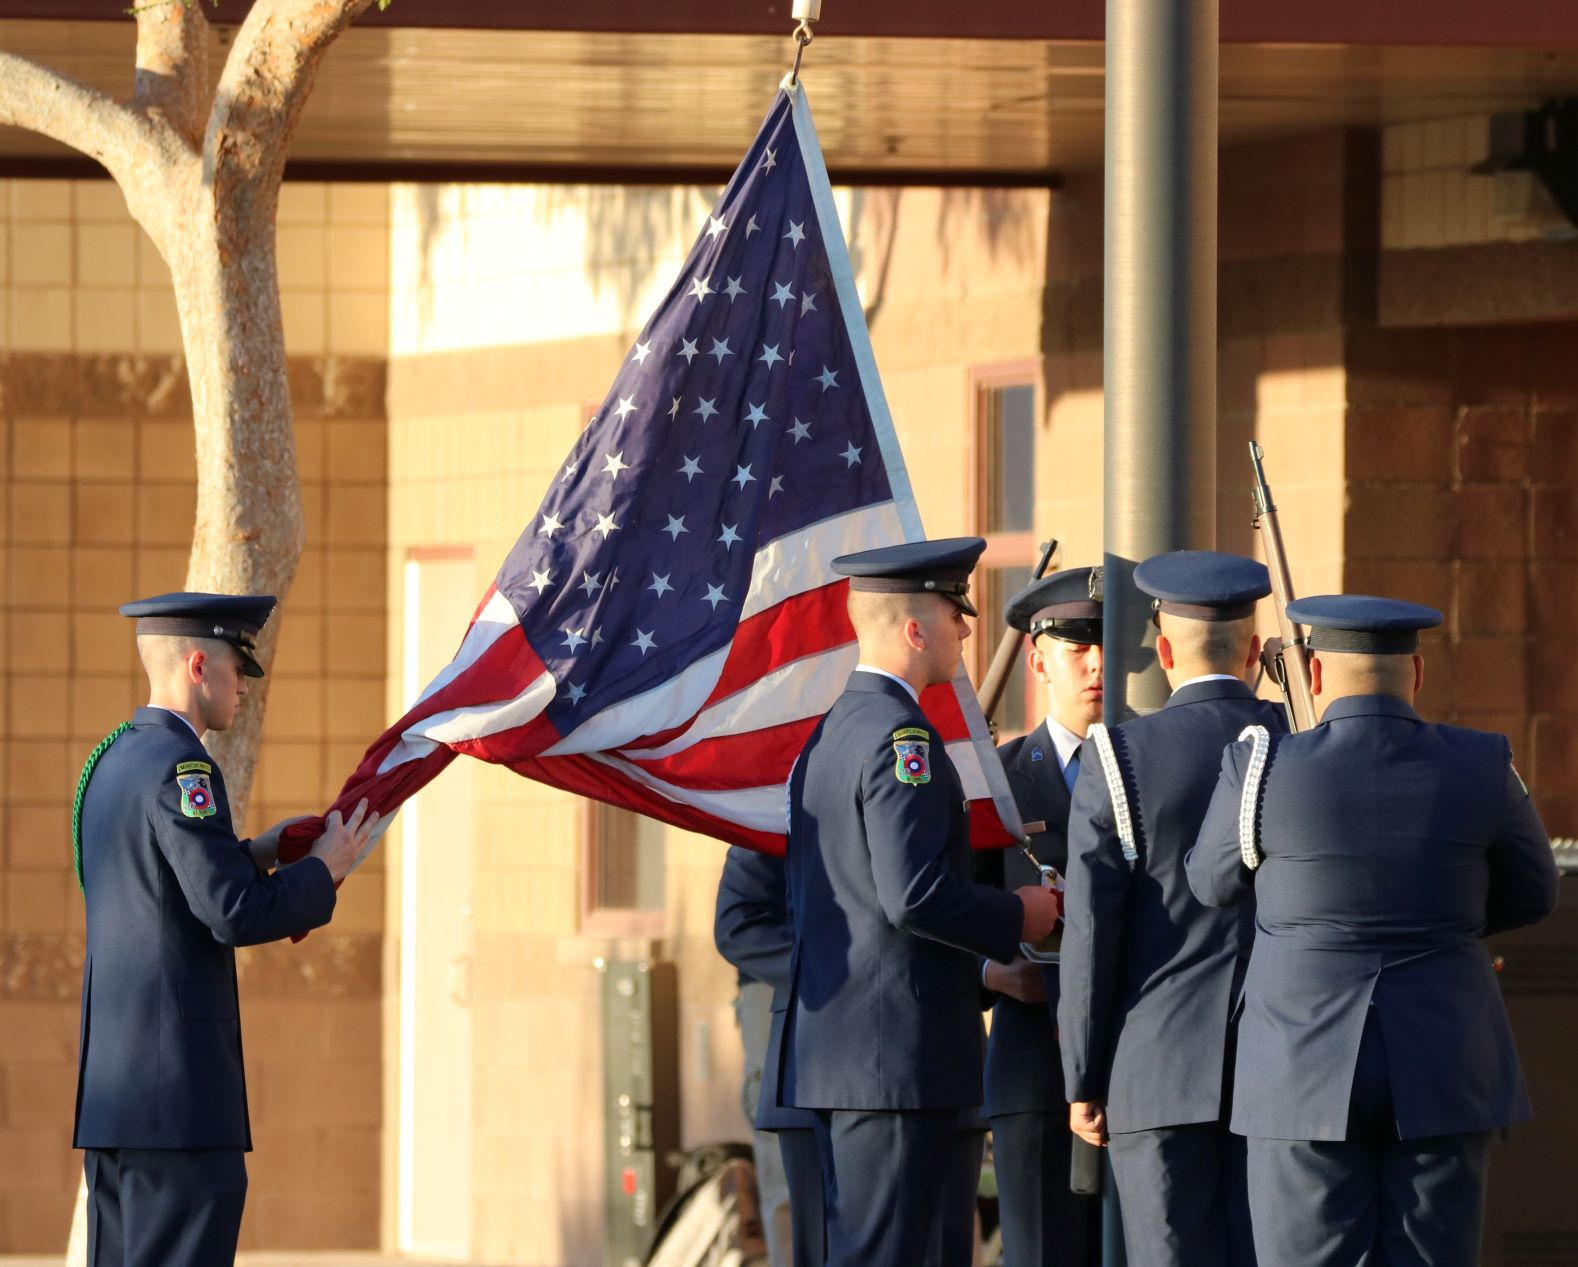 AFJROTC: Not for Self, but for Country